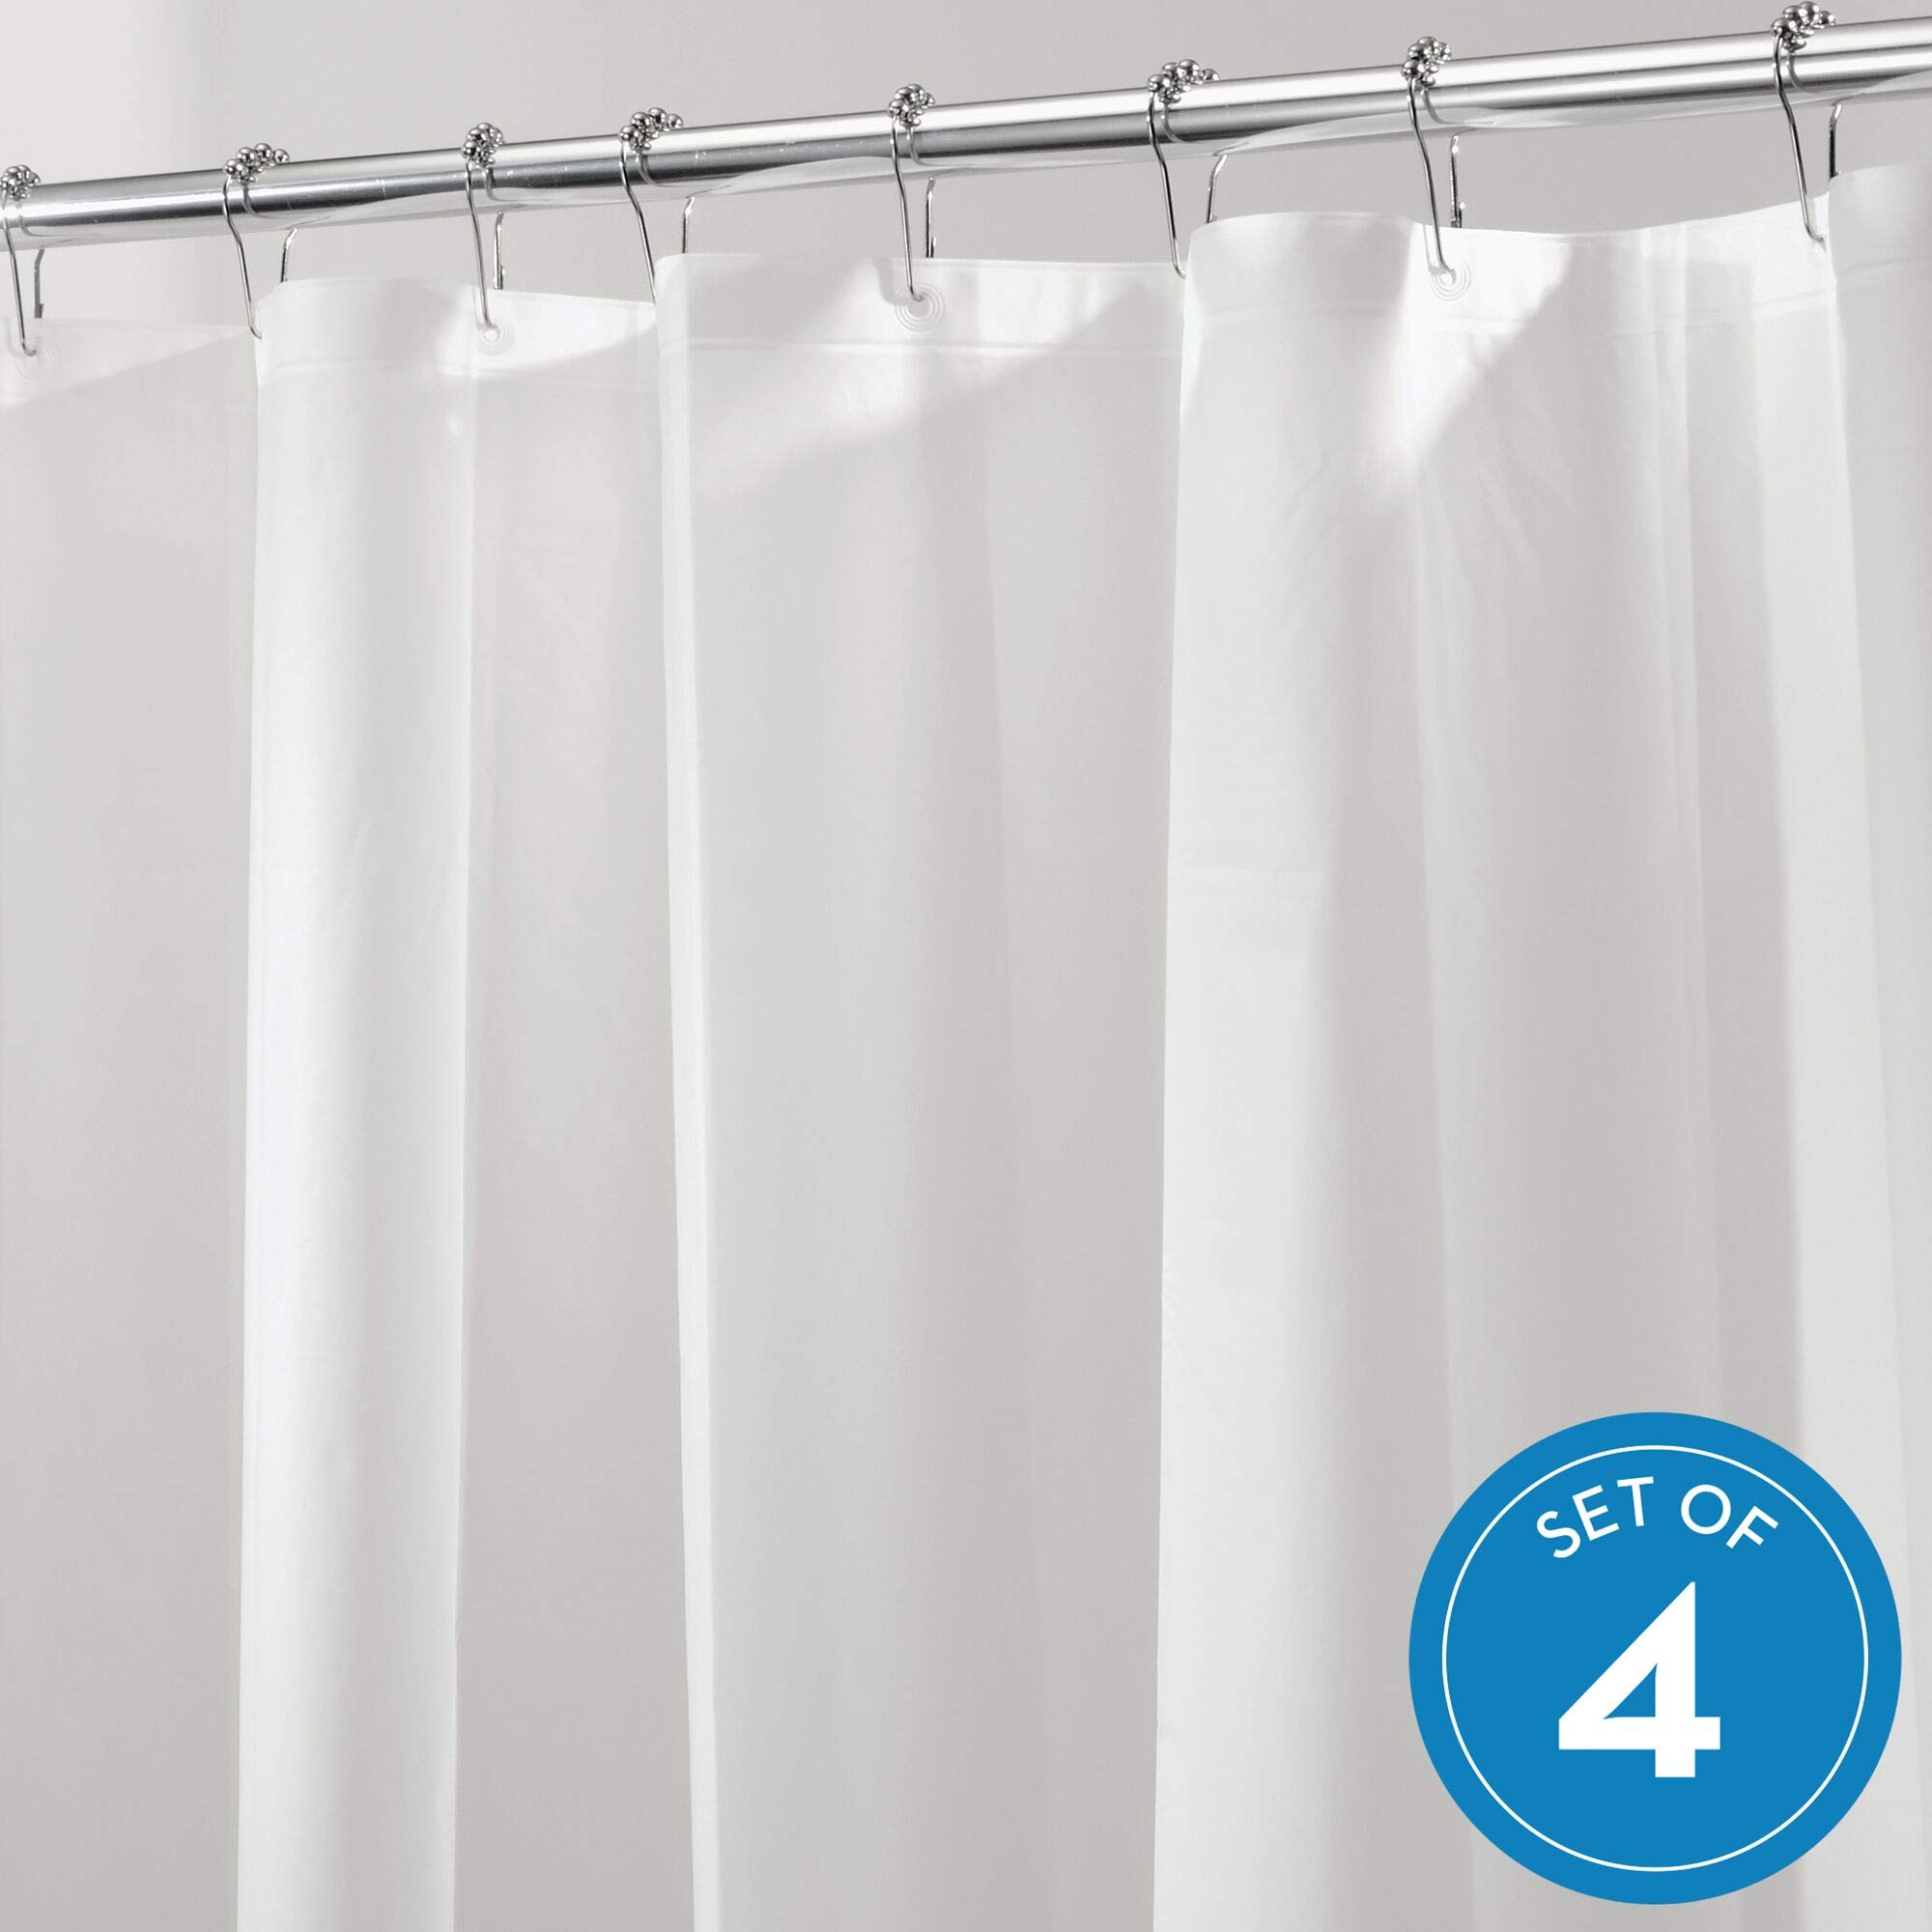 iDesign PEVA hower Liner, Plastic Shower use Alone or with Fabric Curtain-Set of 4, Standard, Frost